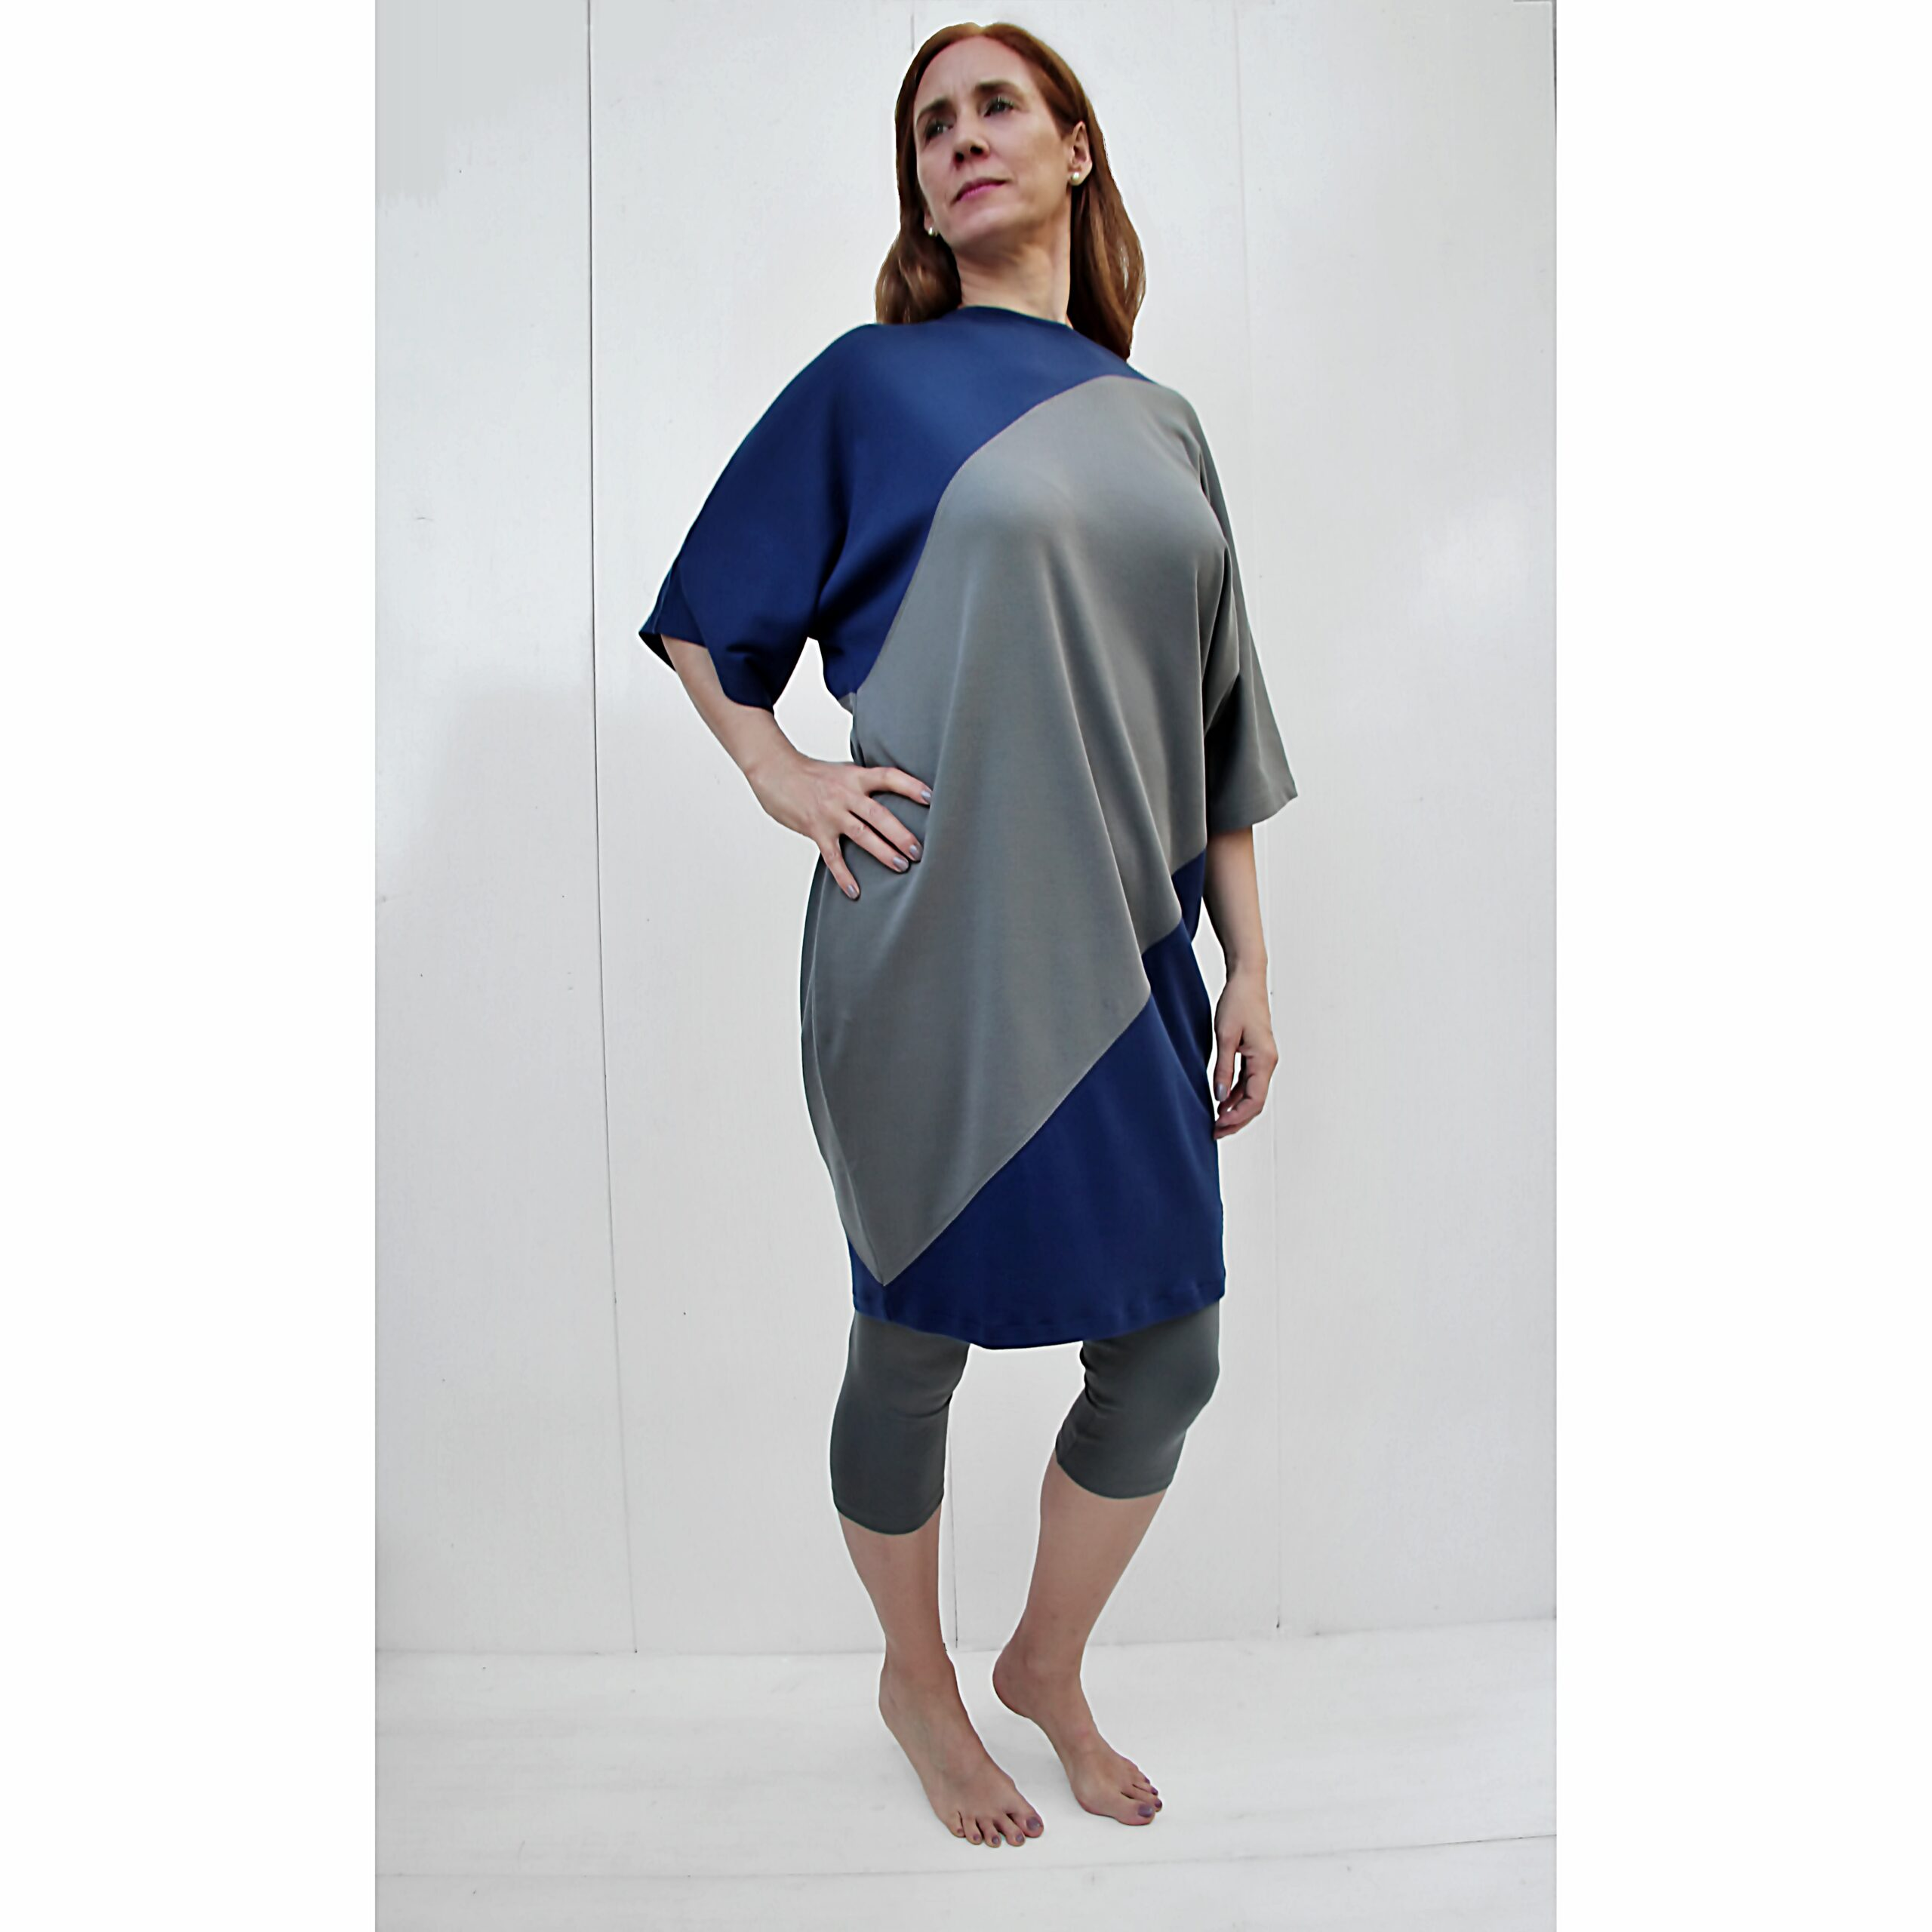 One Size bicolour kimono dress organic pima cotton slowfashion